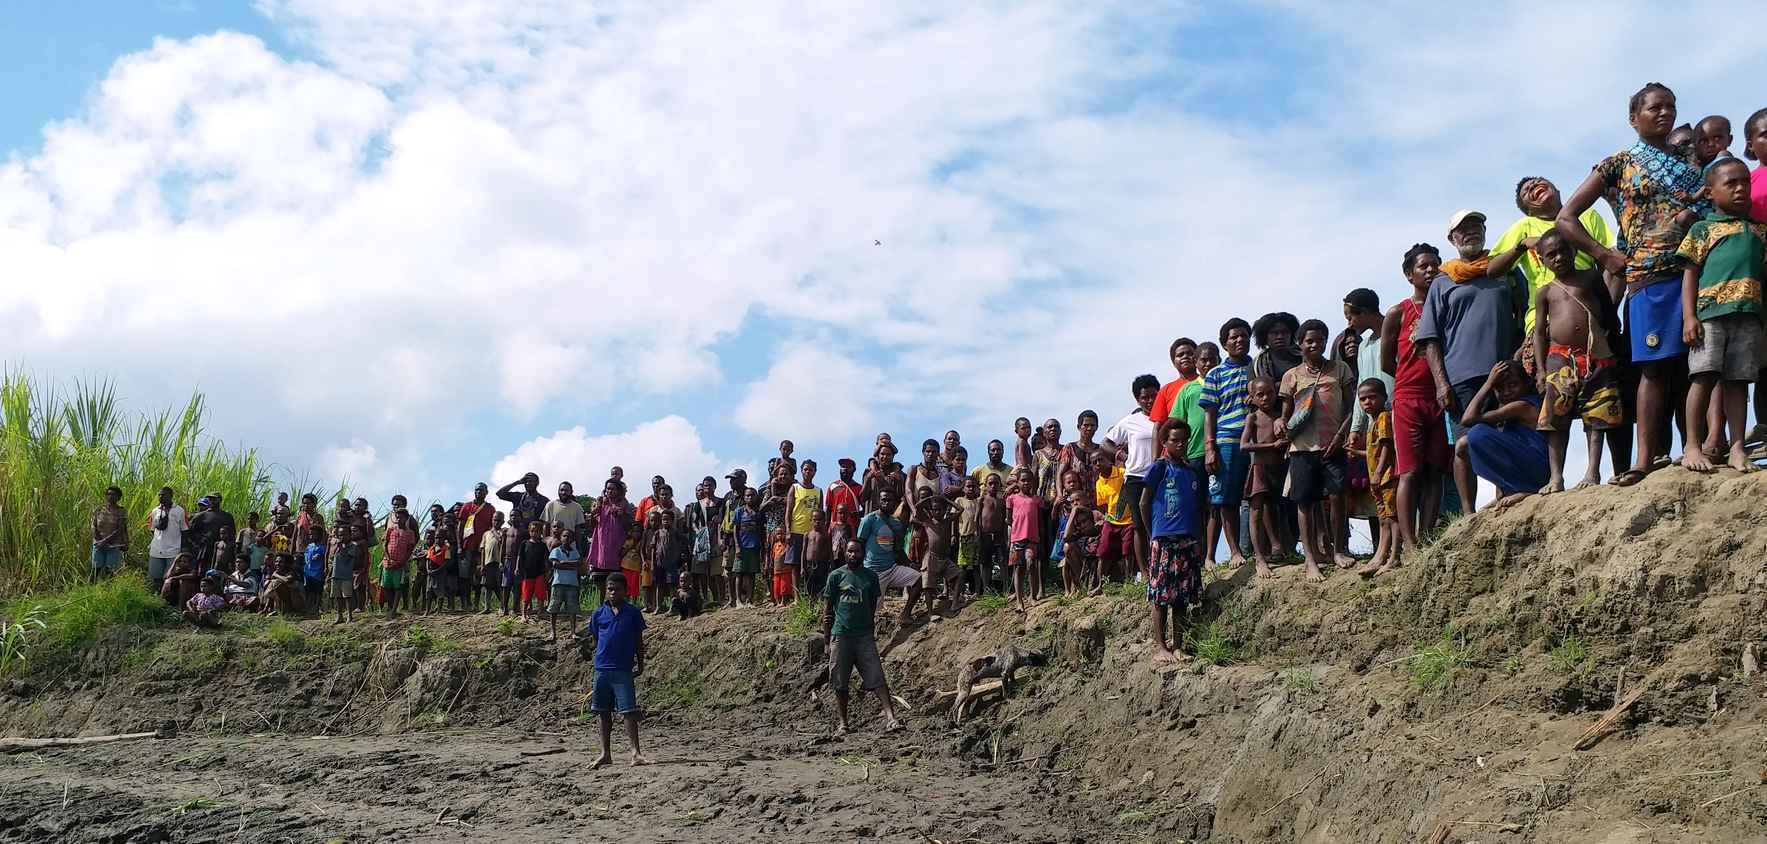 We can respond to those suffering from poverty and exploitation in Papua New Guinea image